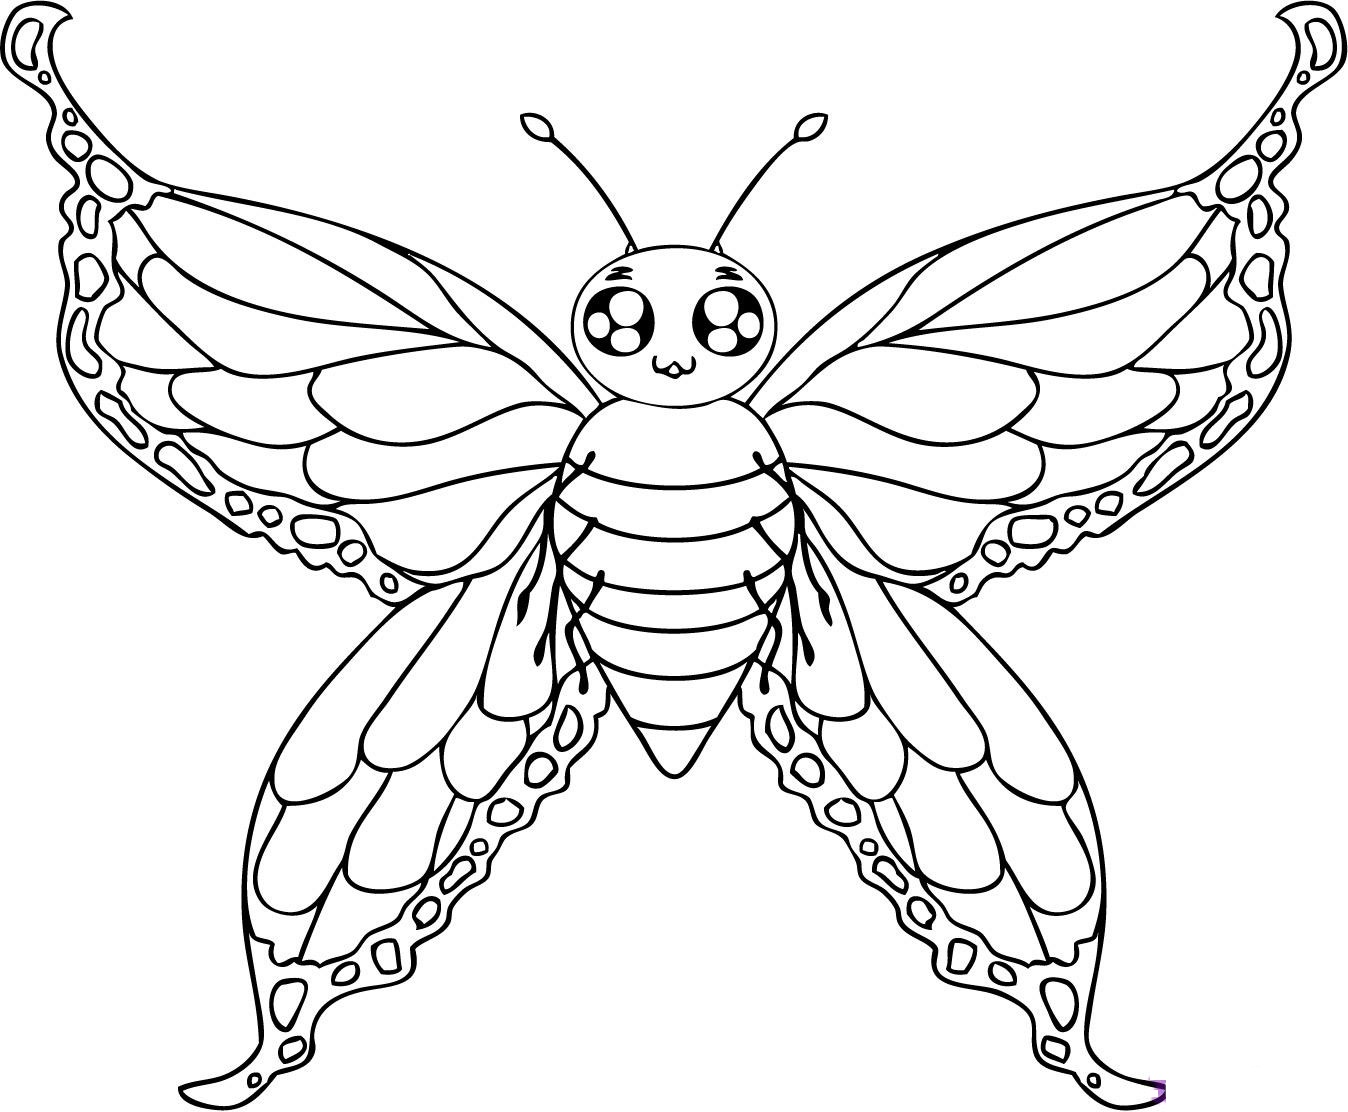 butterfly coloring sheets free printable butterfly coloring pages for kids butterfly coloring sheets 1 3